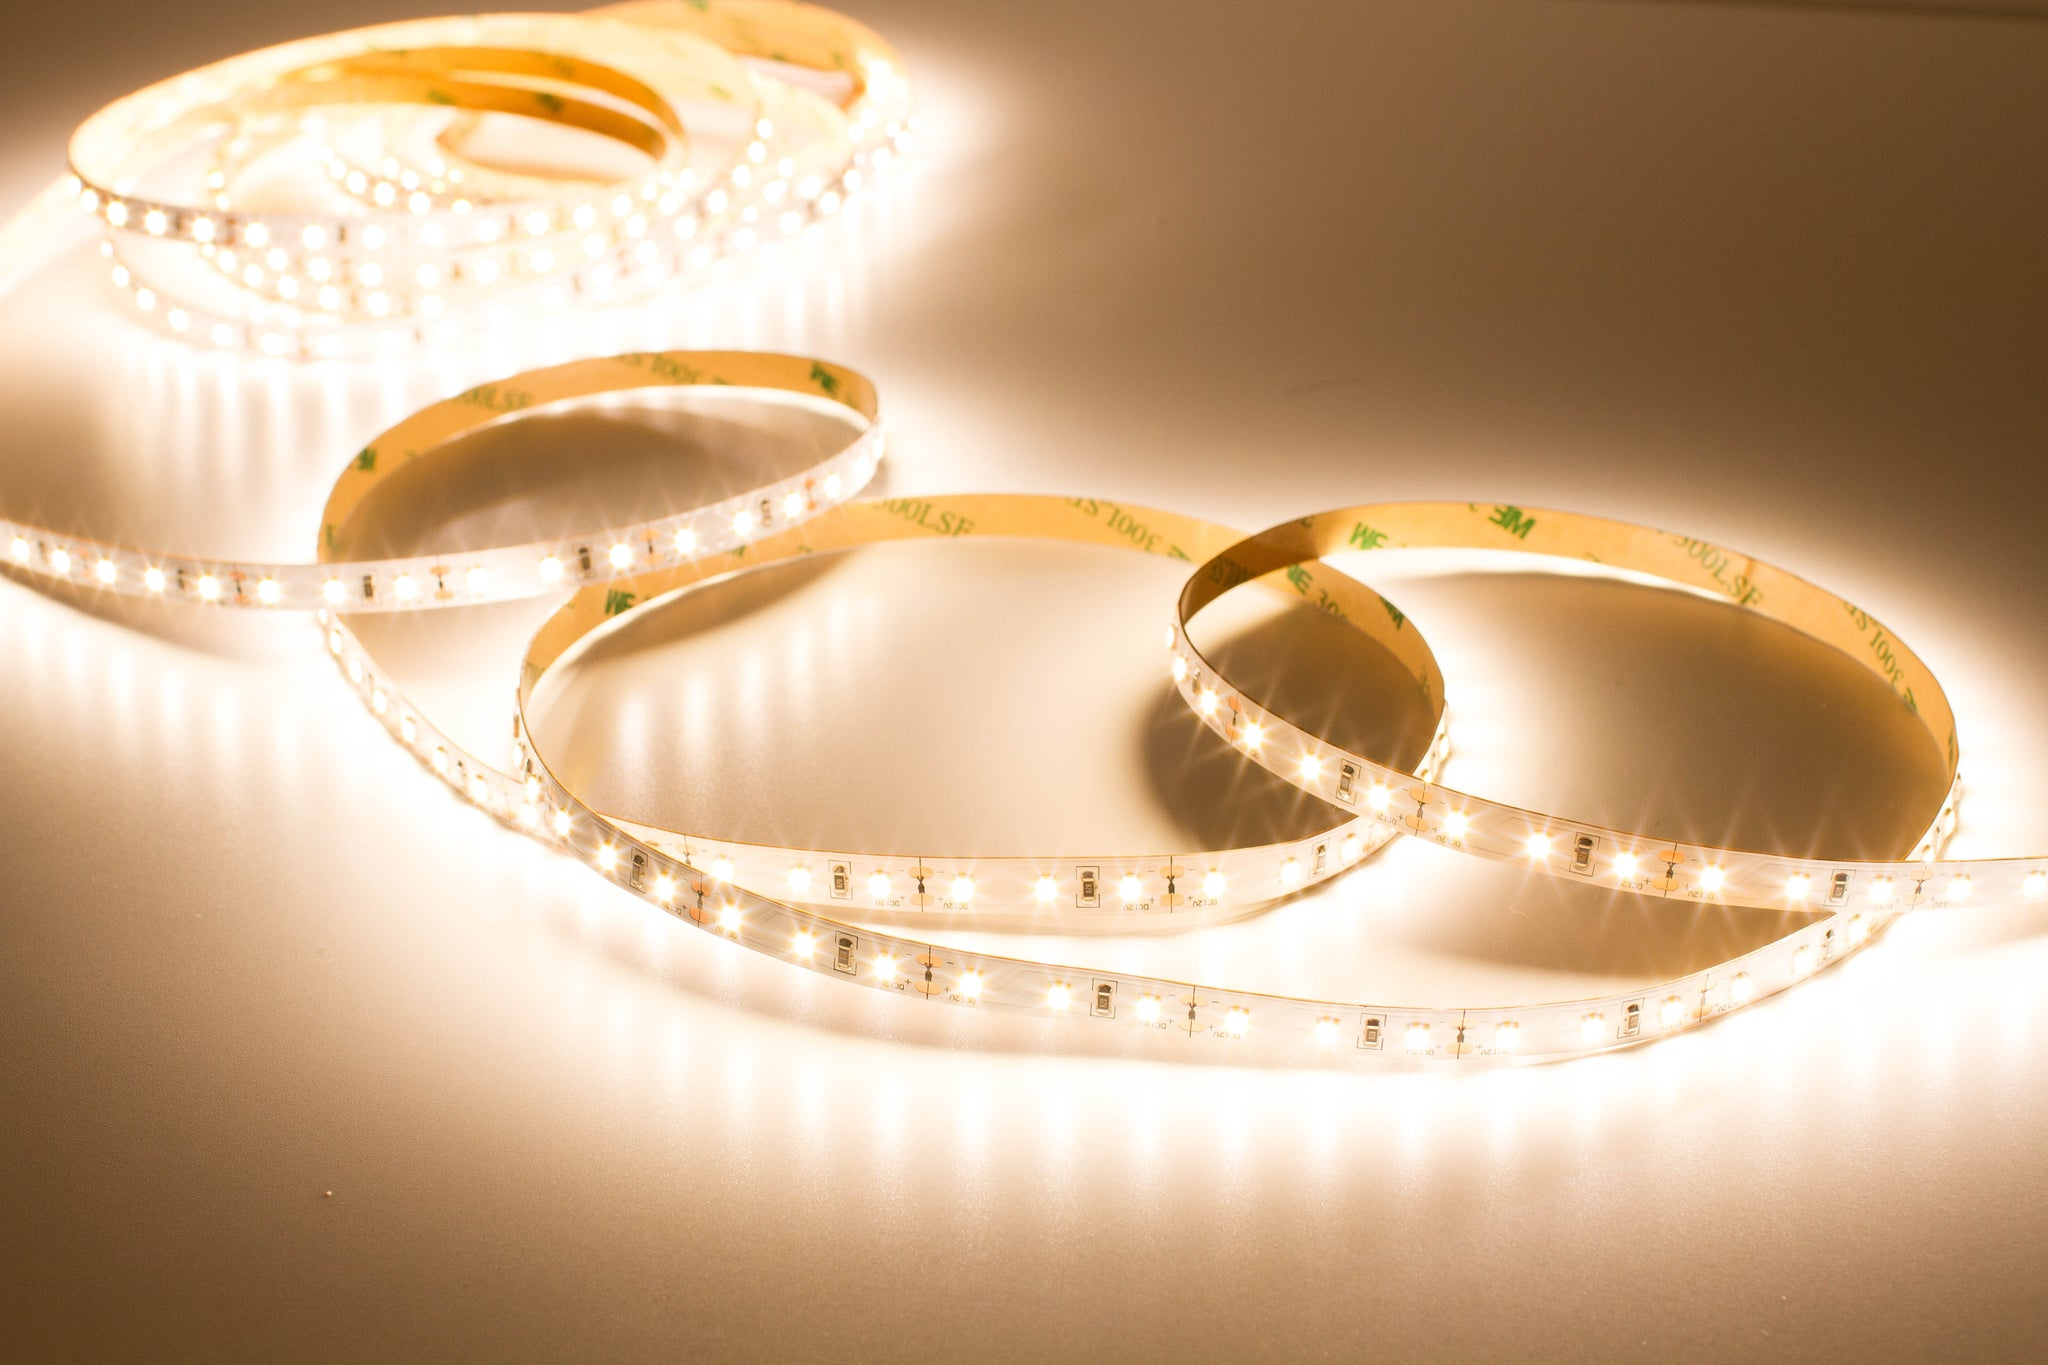 12v 2835 series cri 95 3000k warm white color led strip light led 12v 2835 series cri 95 3000k warm white color led strip light mozeypictures Image collections